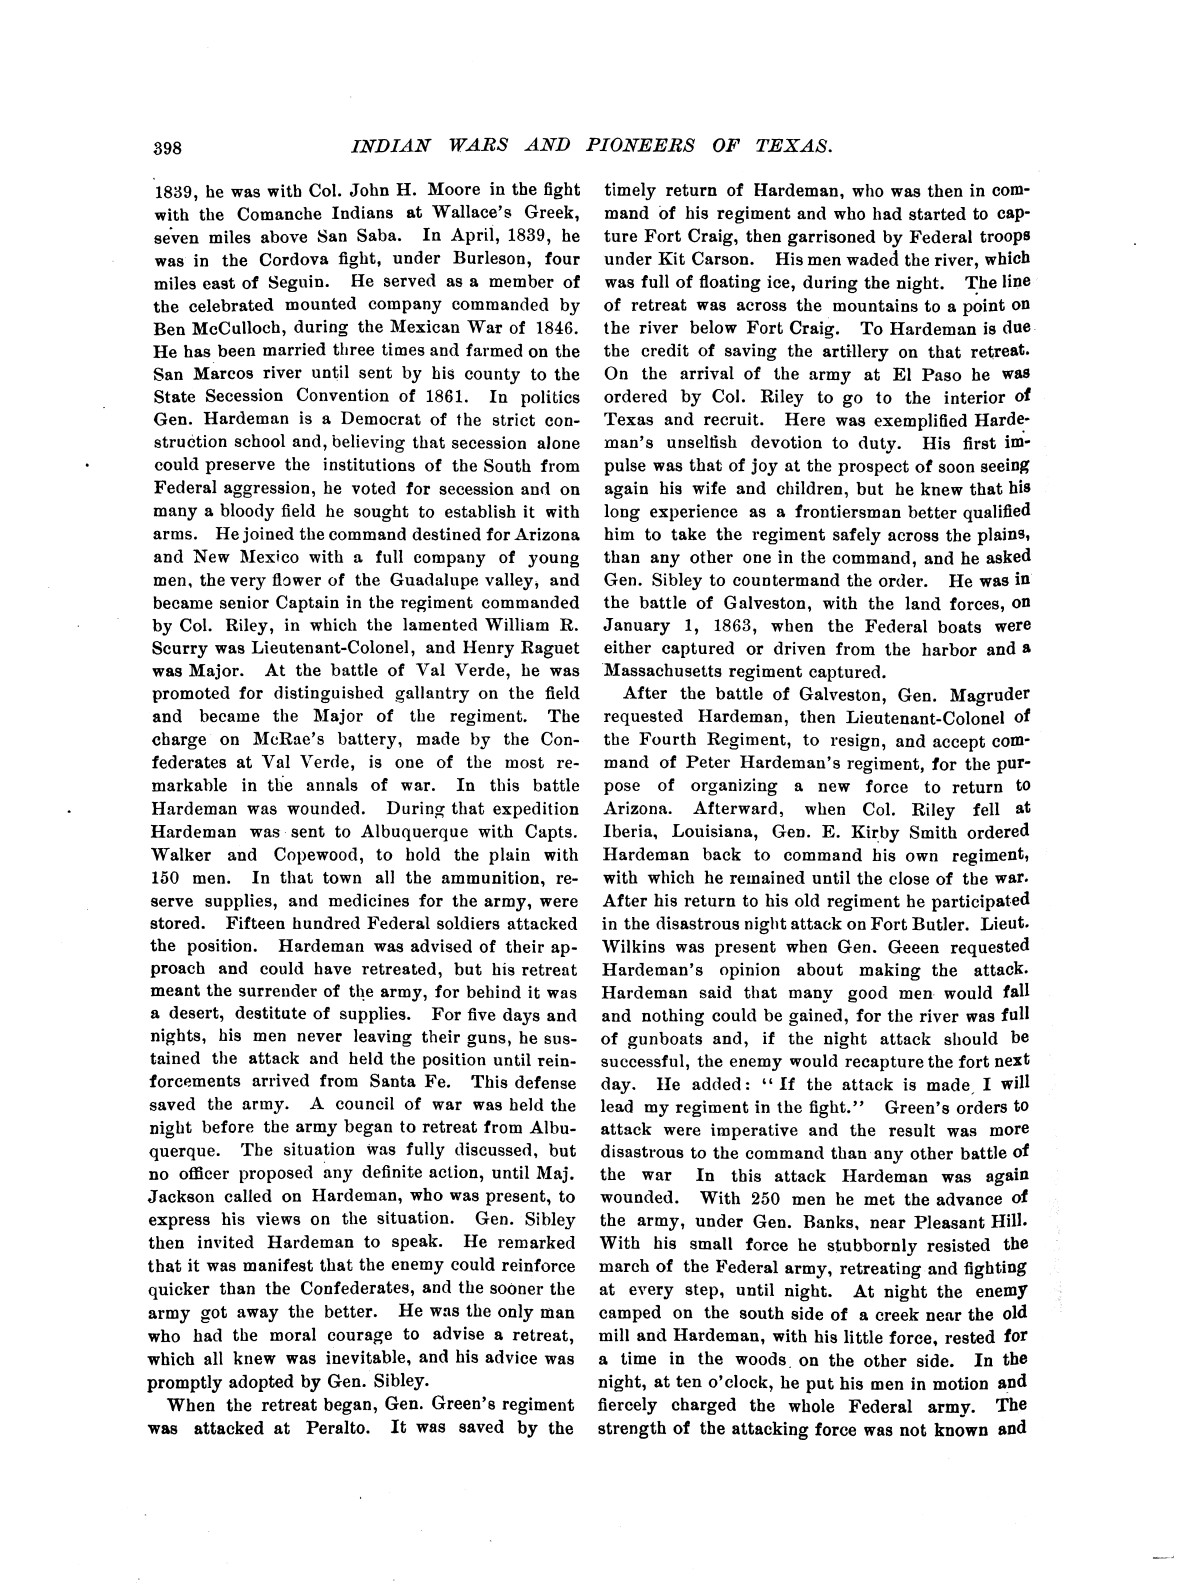 Indian wars and pioneers of Texas / by John Henry Brown.                                                                                                      [Sequence #]: 475 of 894